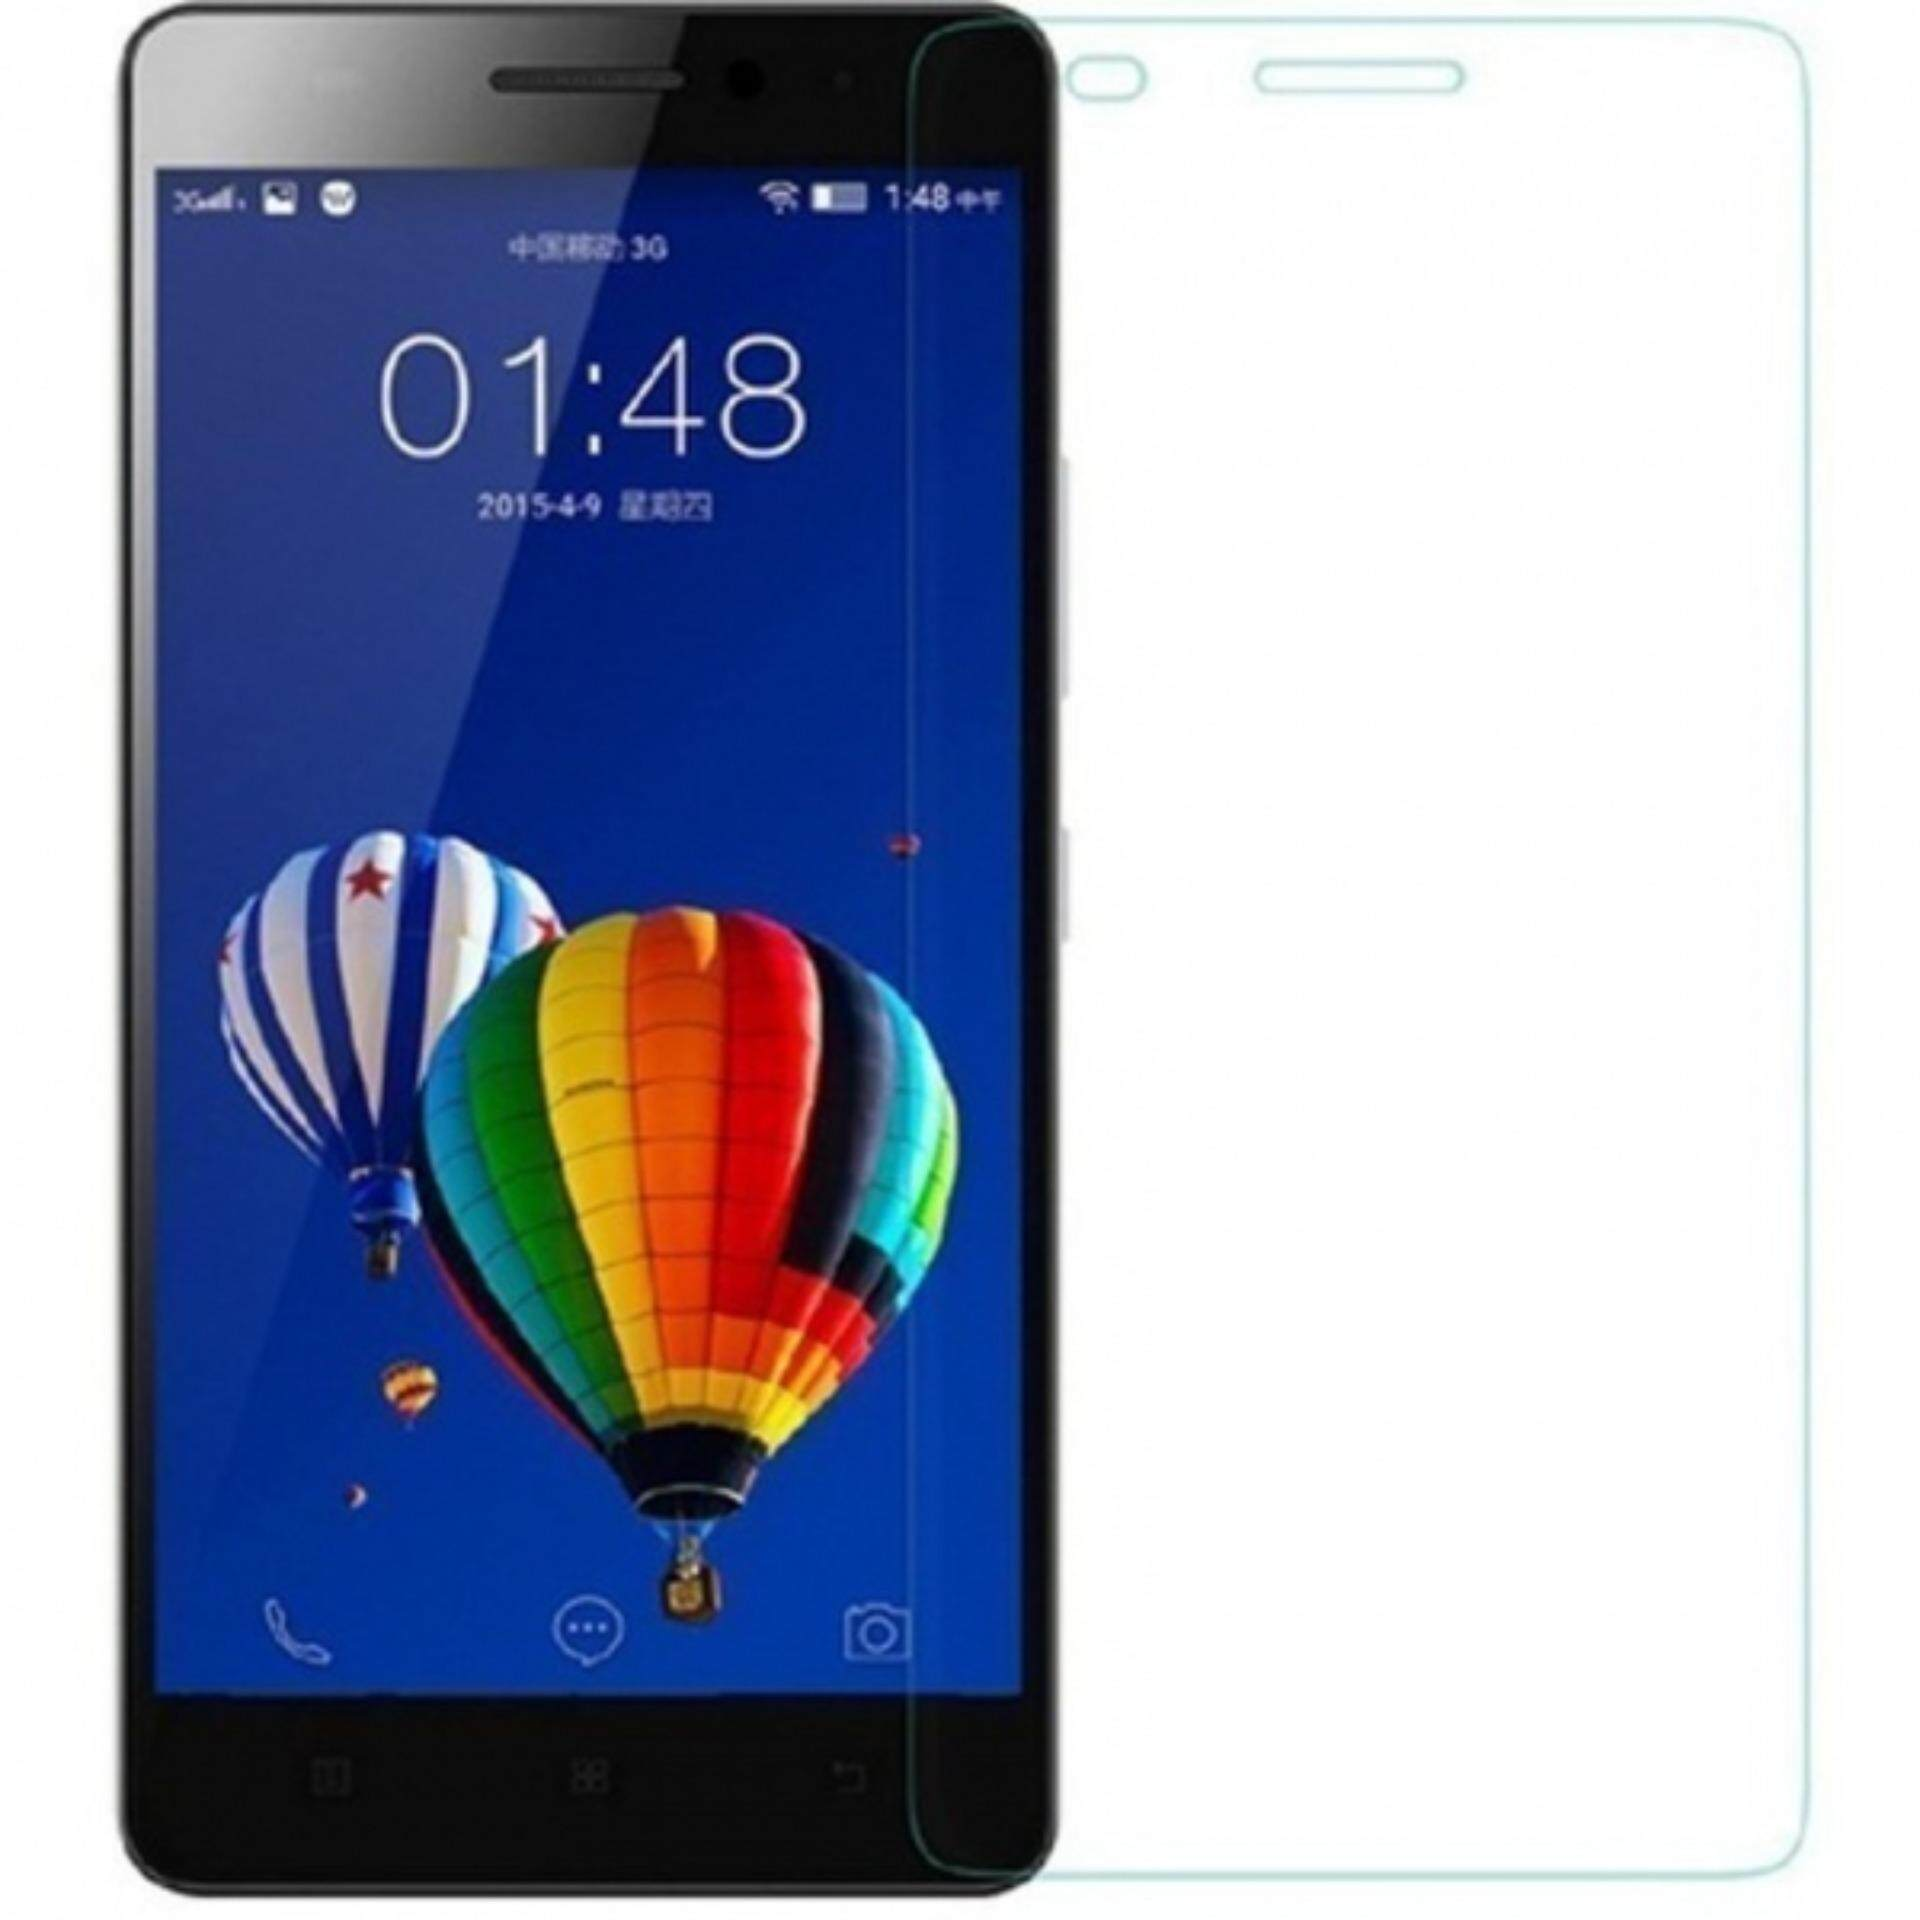 Lenovo Products Accessories For The Best Price In Malaysia S650 Android Quadcore S850 Tempered Glass Screen Protector